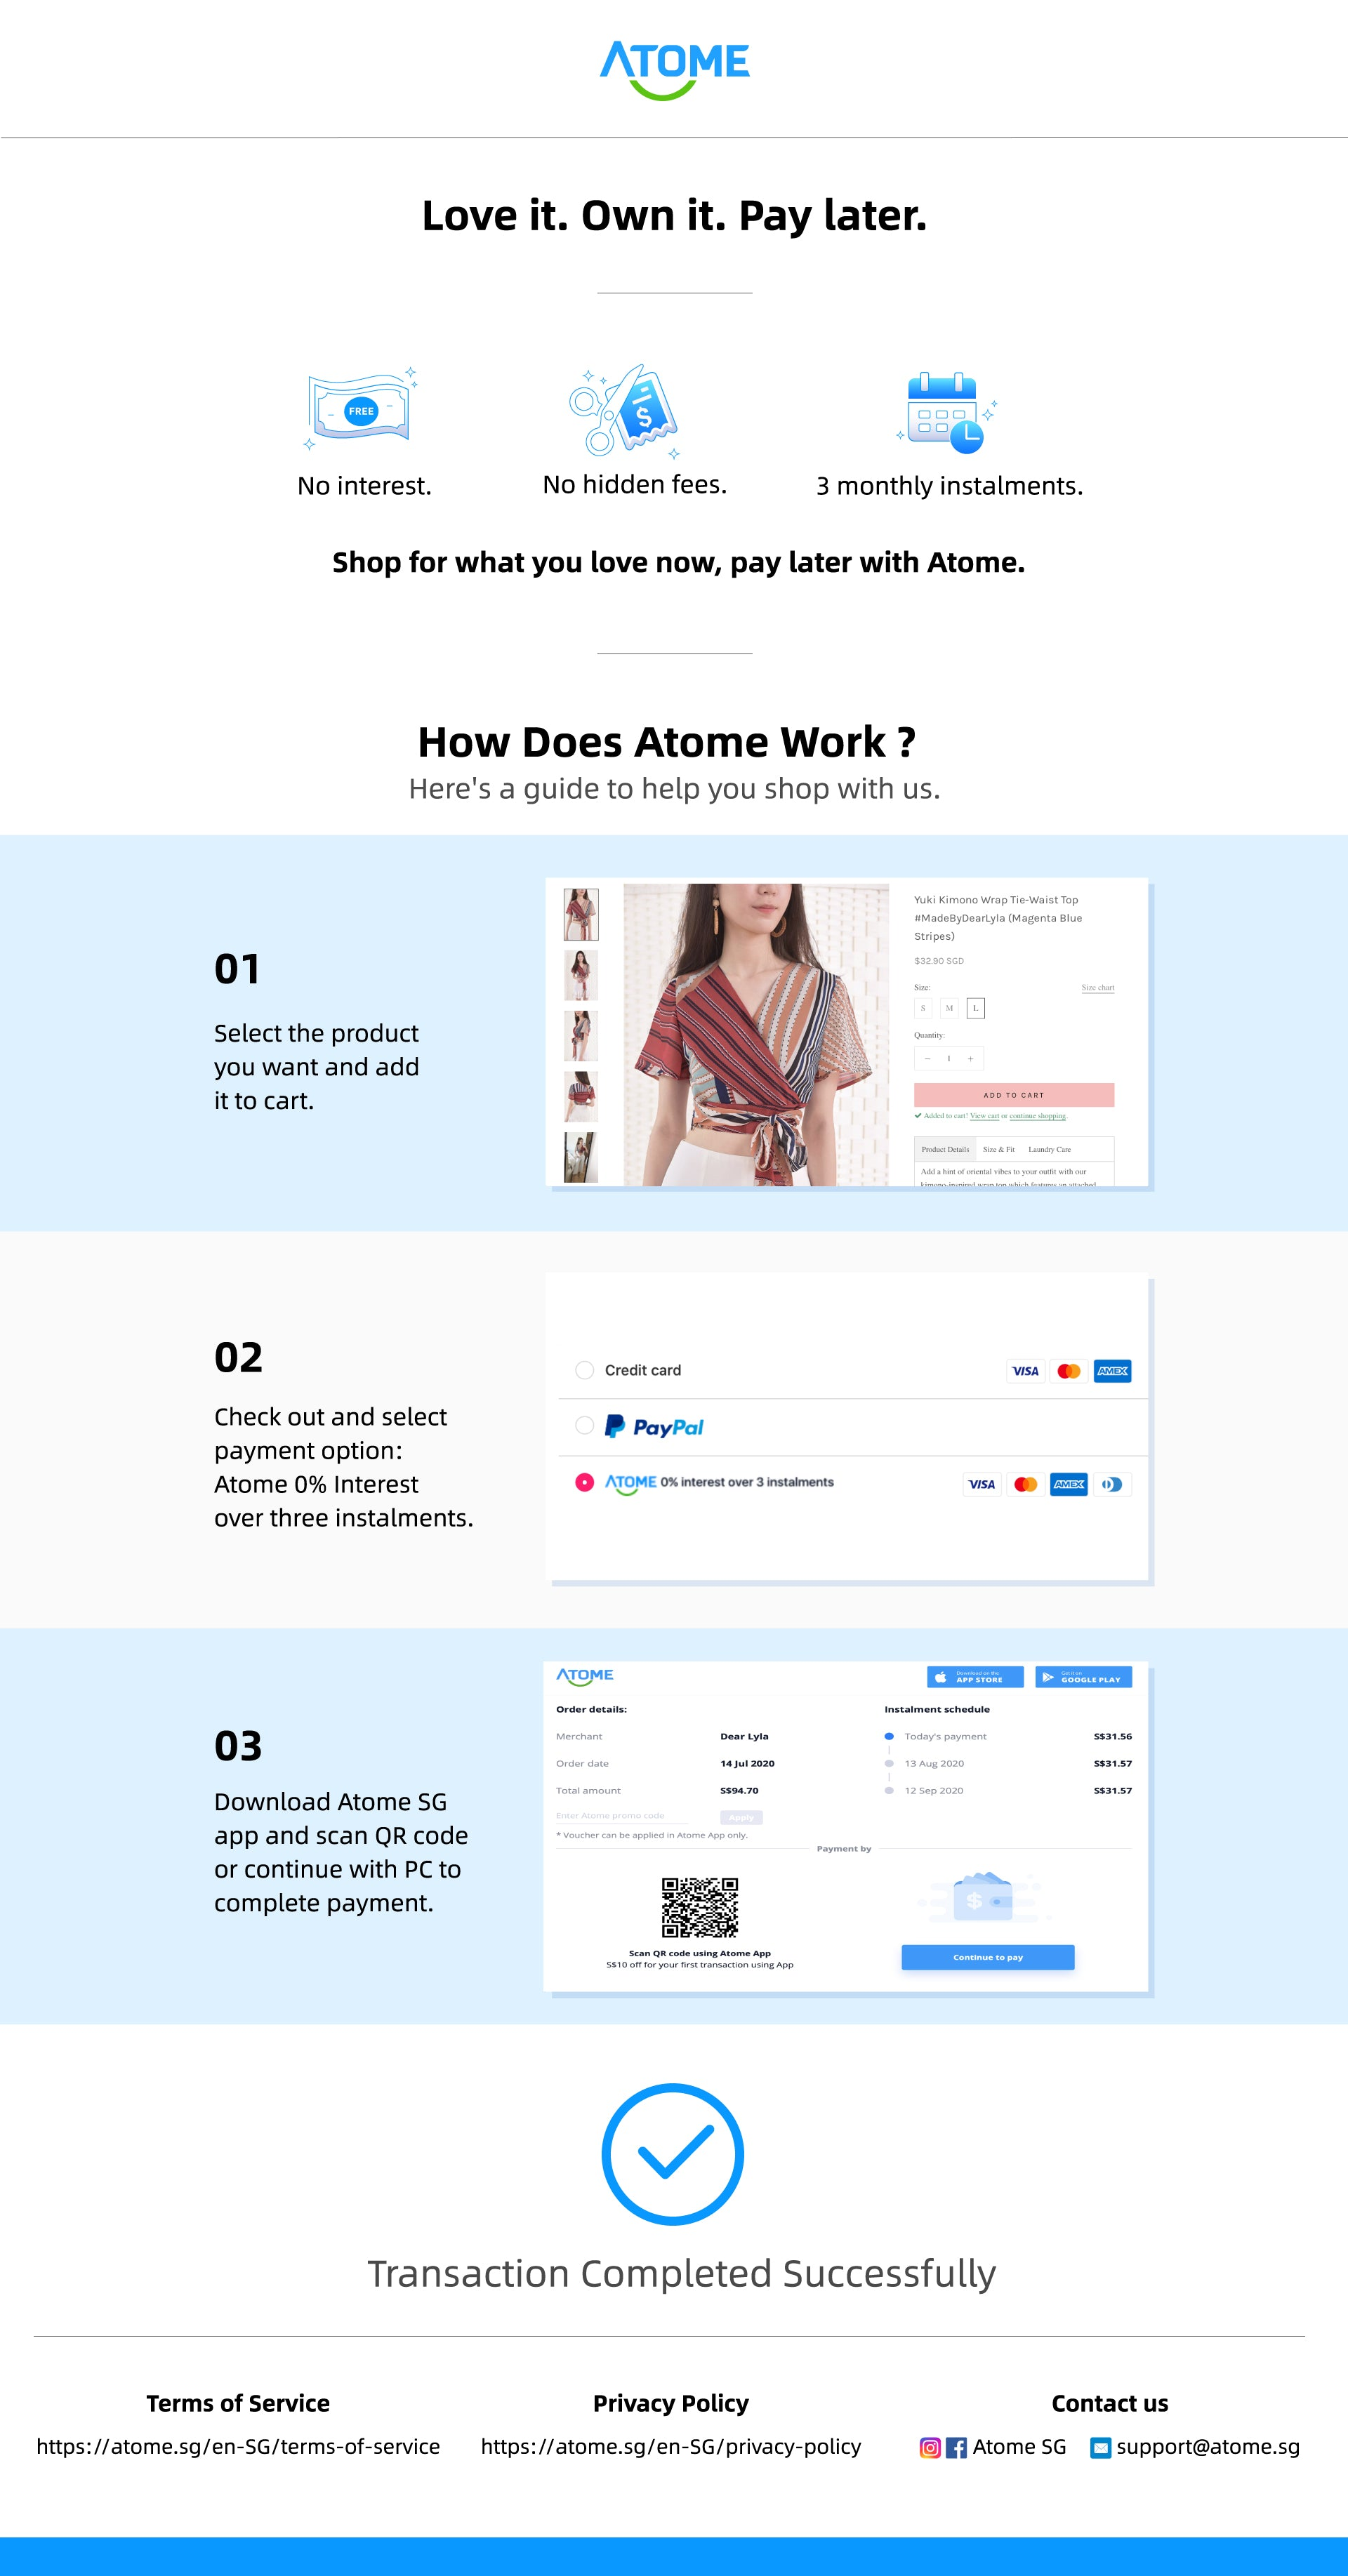 Dear Lyla Singapore Atome SG collaboration love it own it pay later a payment gateway allows you to shop now and pay later in 3 monthly instalments with 0% interest. No interest, no hidden fee, 3 monthly instalments. Online women fashion Singapore women clothing blogshop